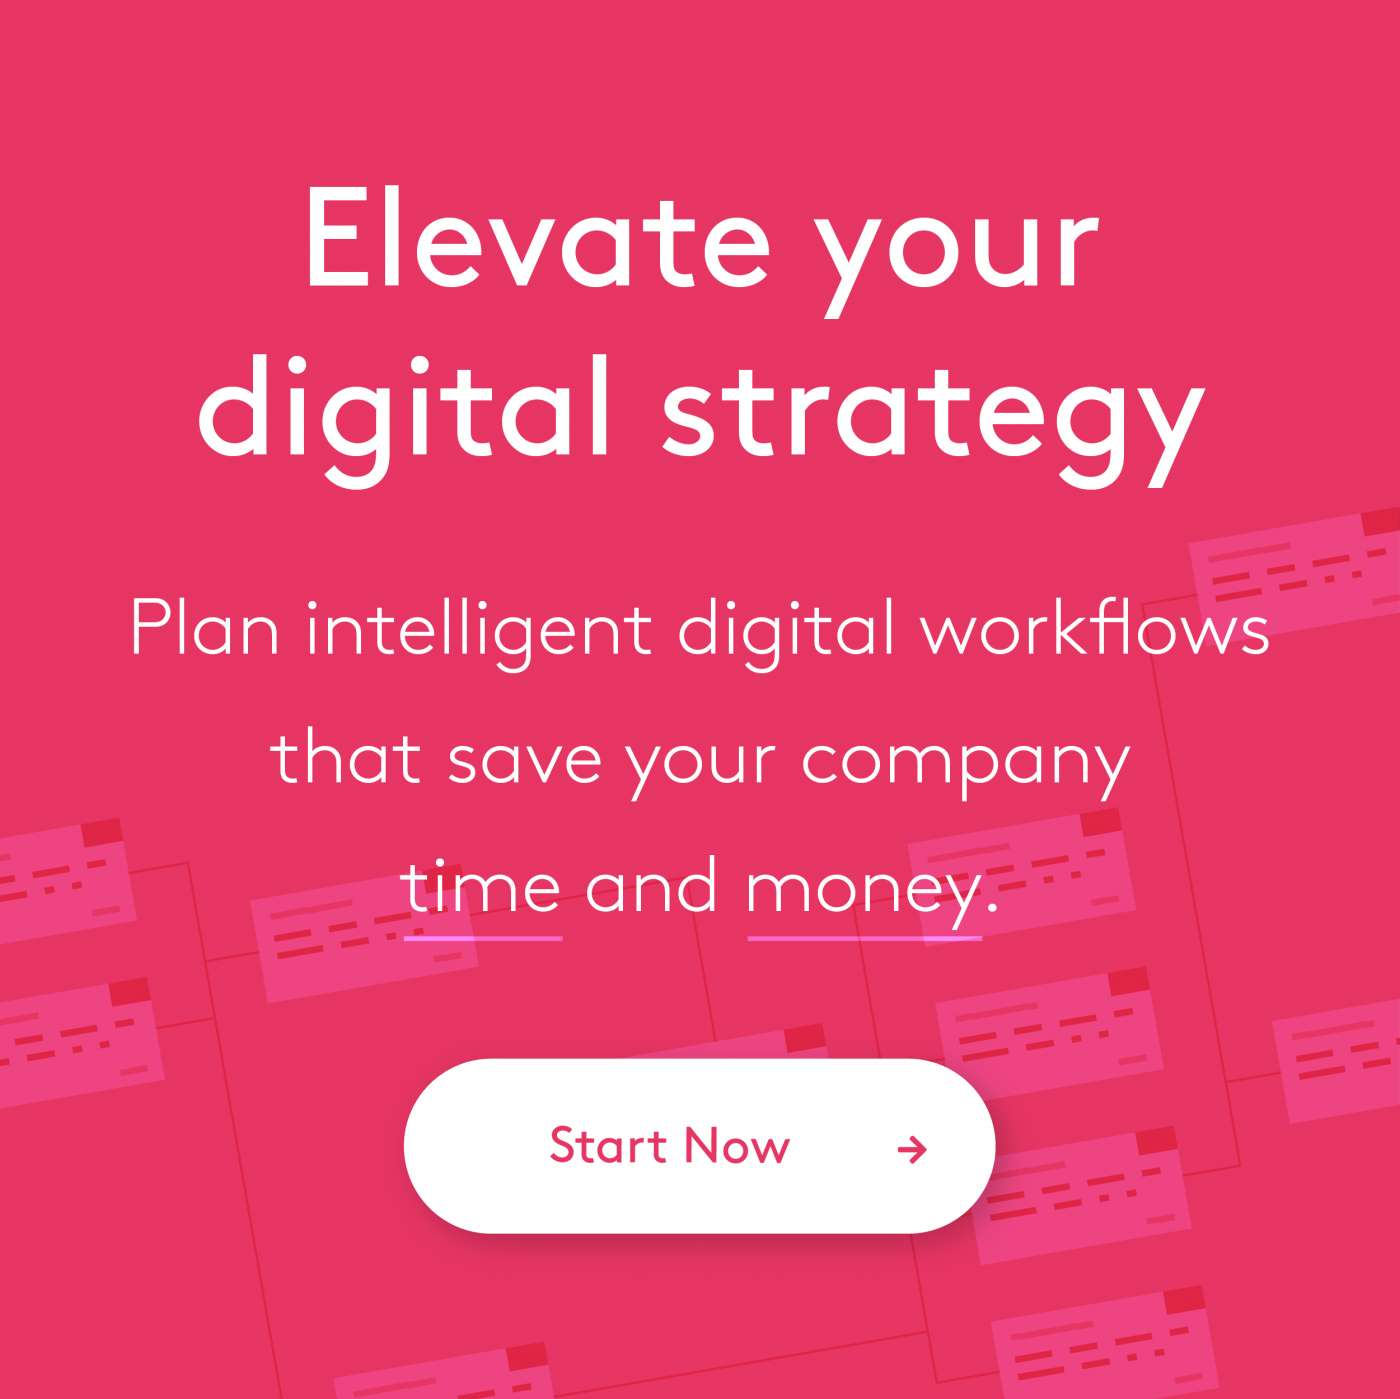 Elevate Your Digital Strategy